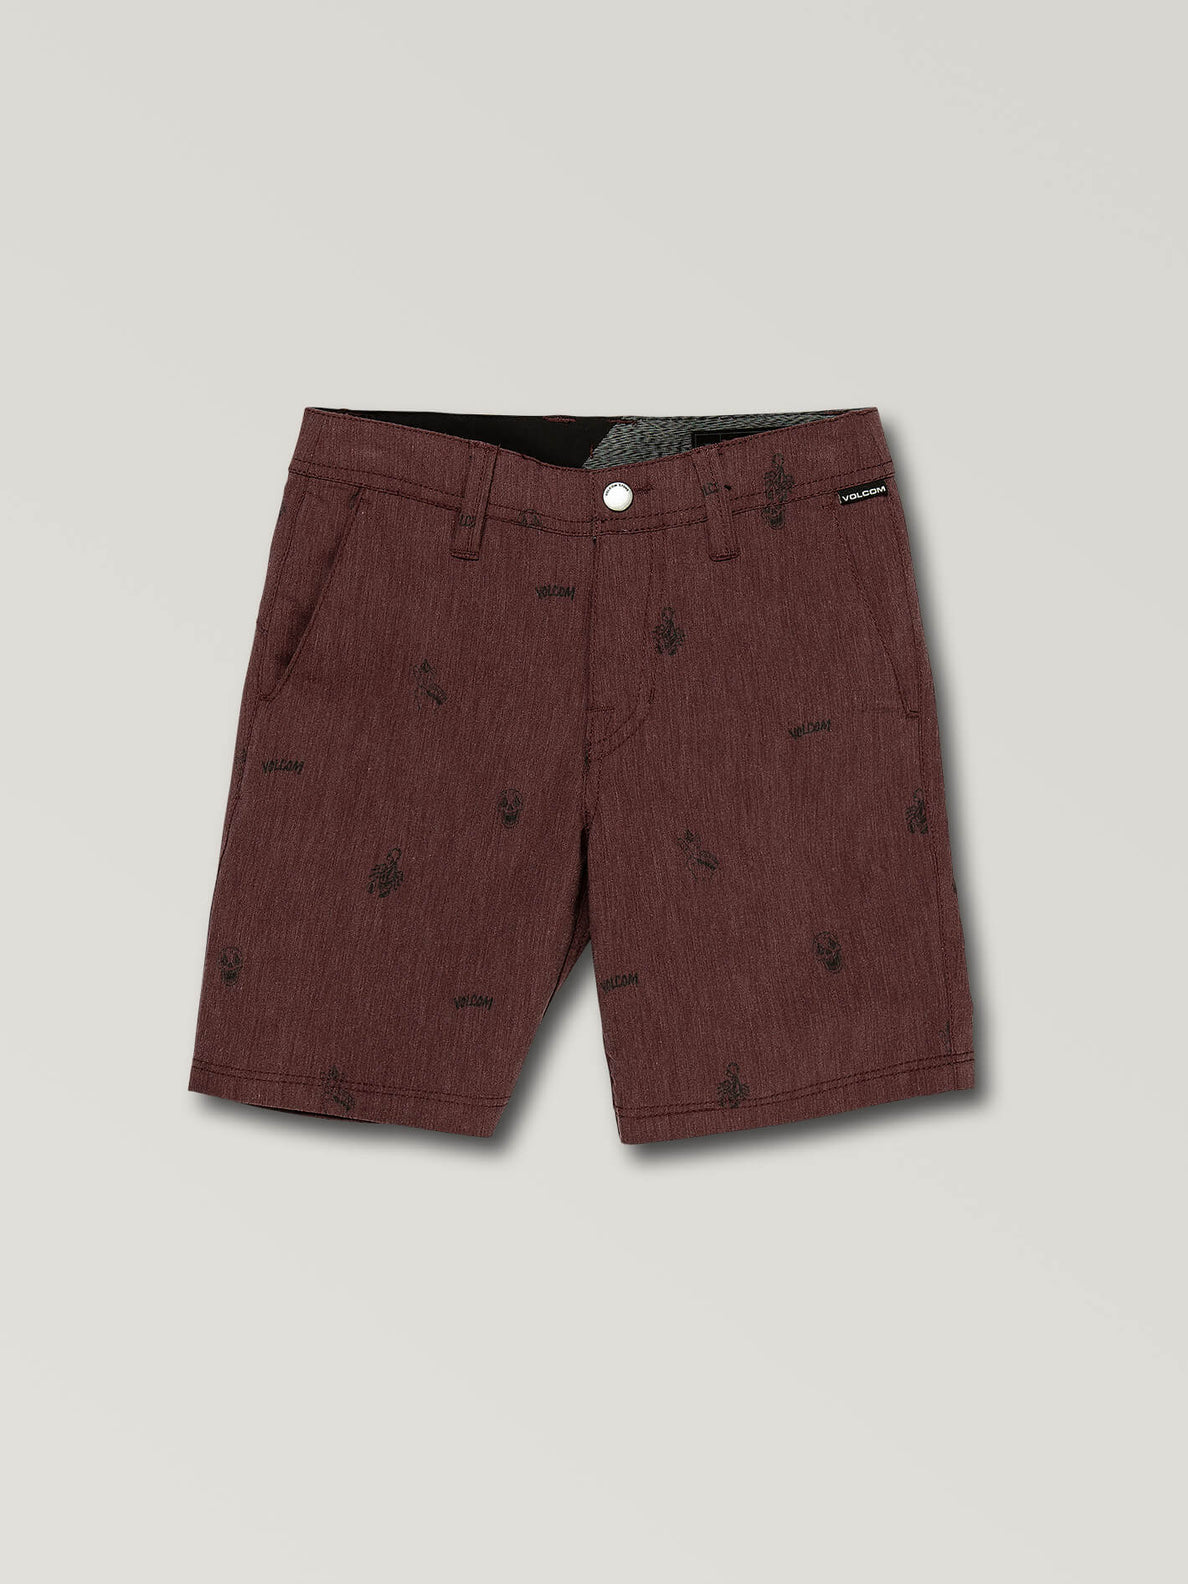 Little Boys Frickin Surf N' Turf Printed Hybrid Shorts In Wine, Front View